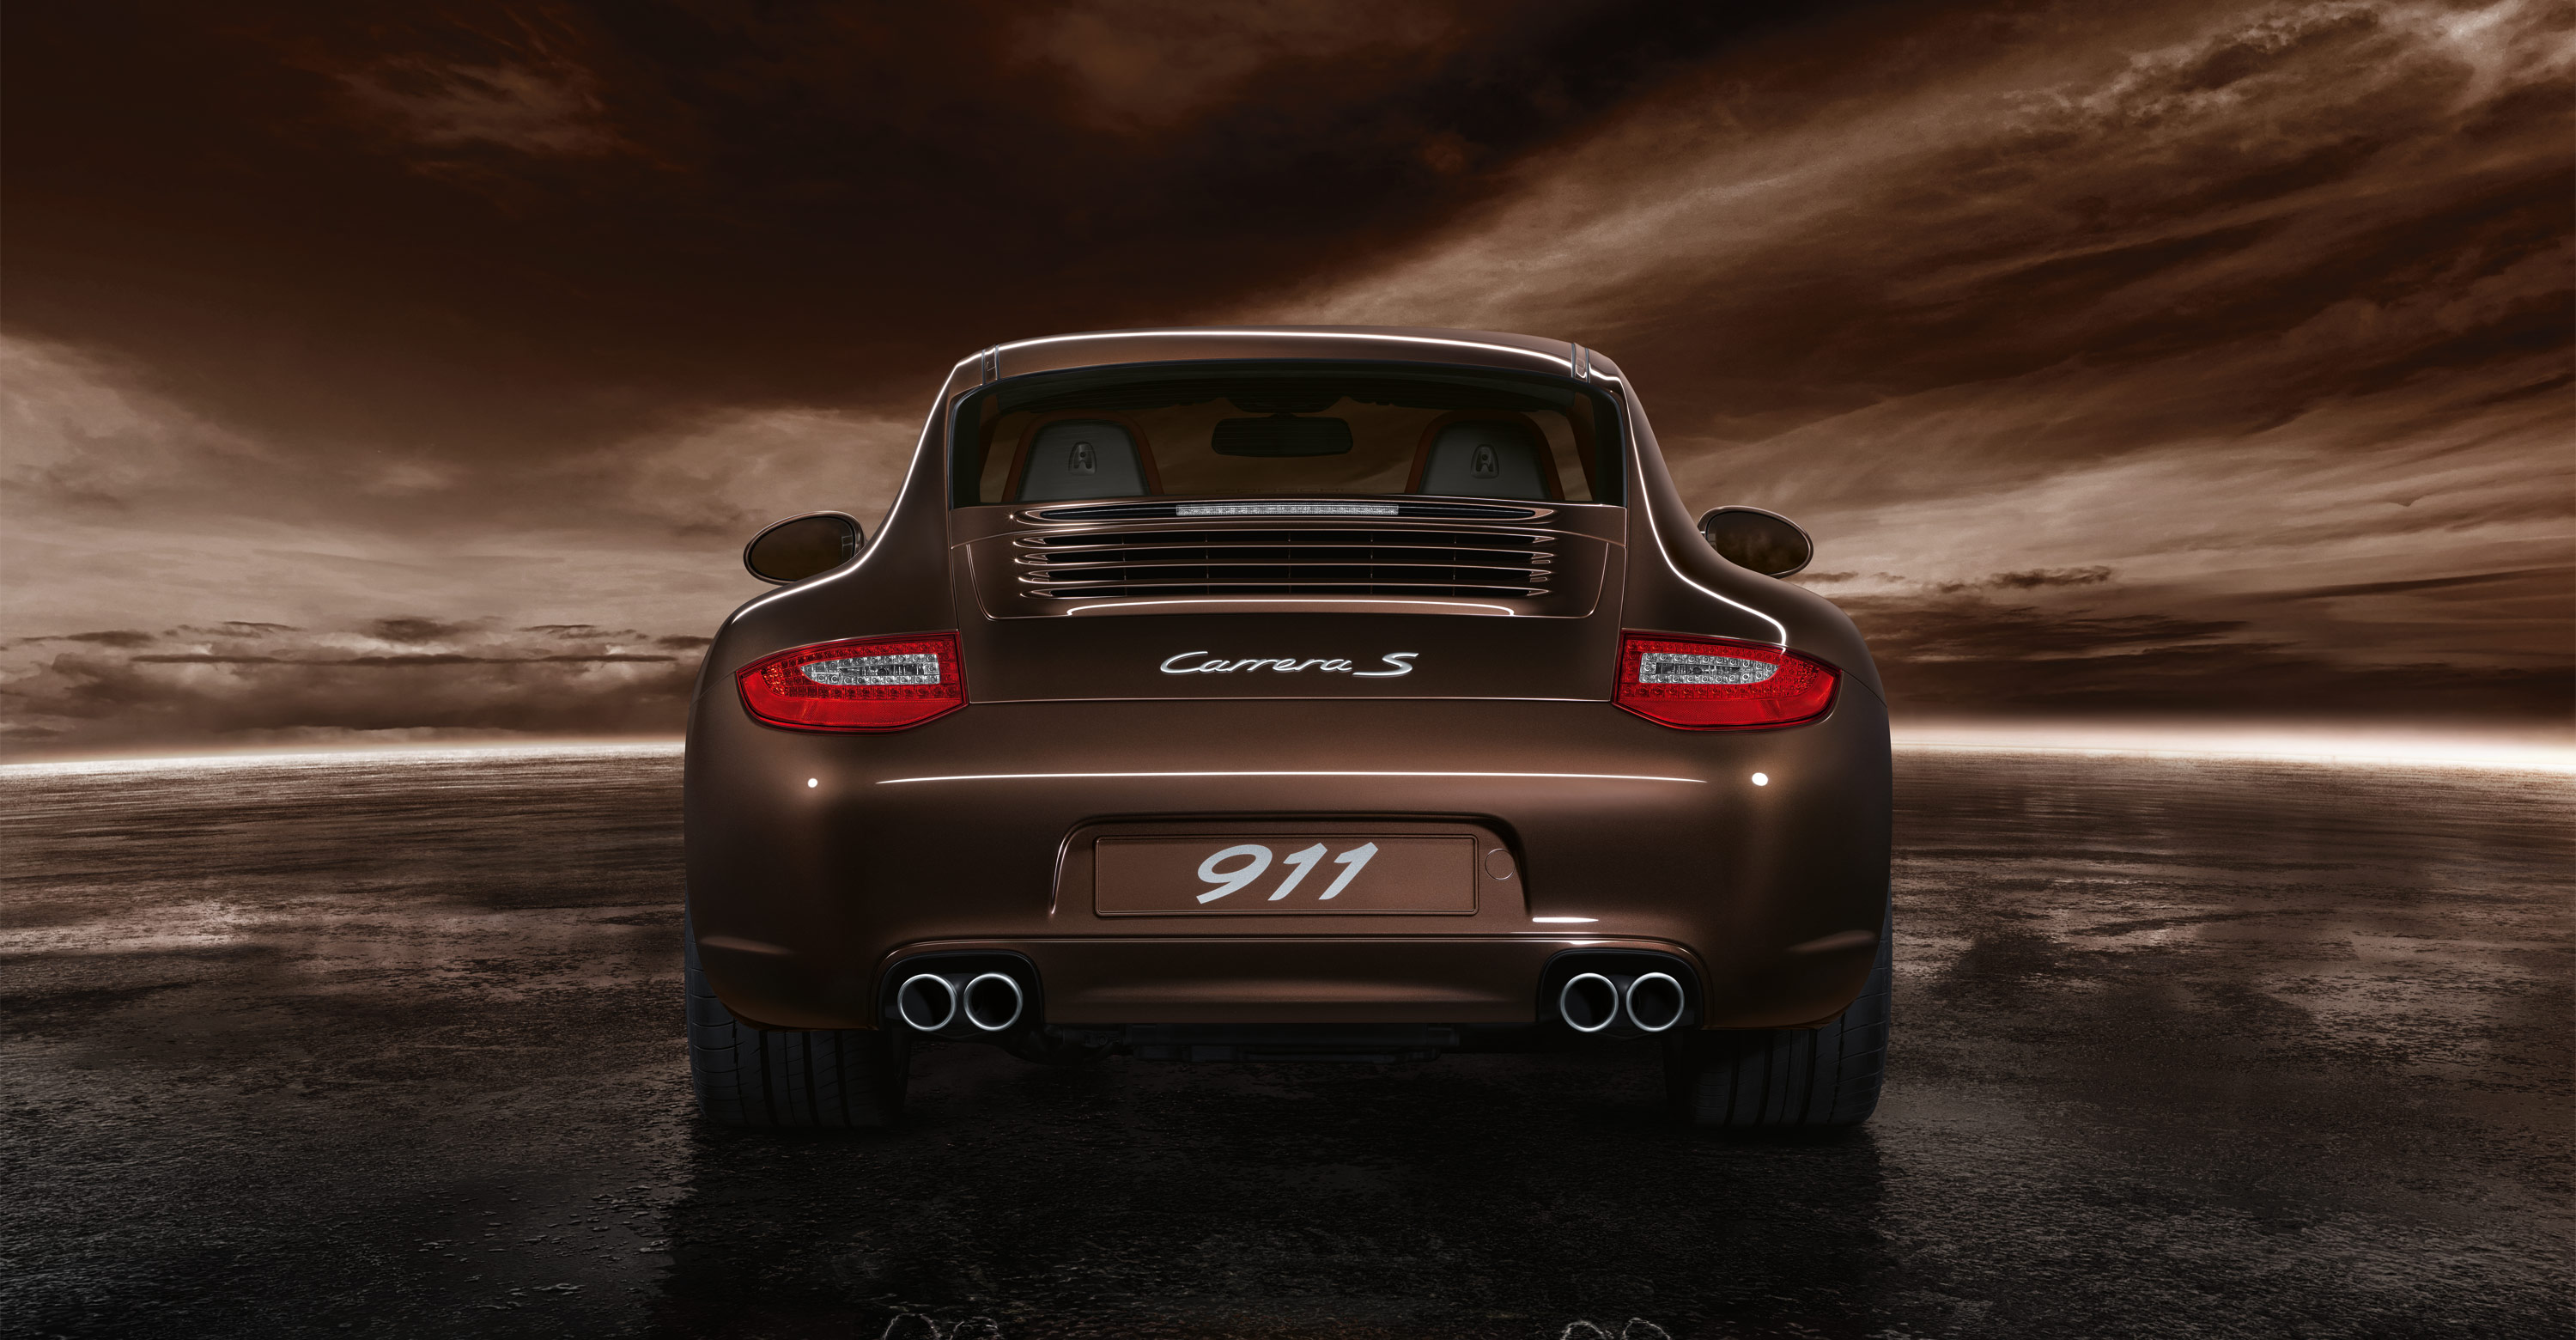 2011 brown porsche 911 carrera s wallpapers